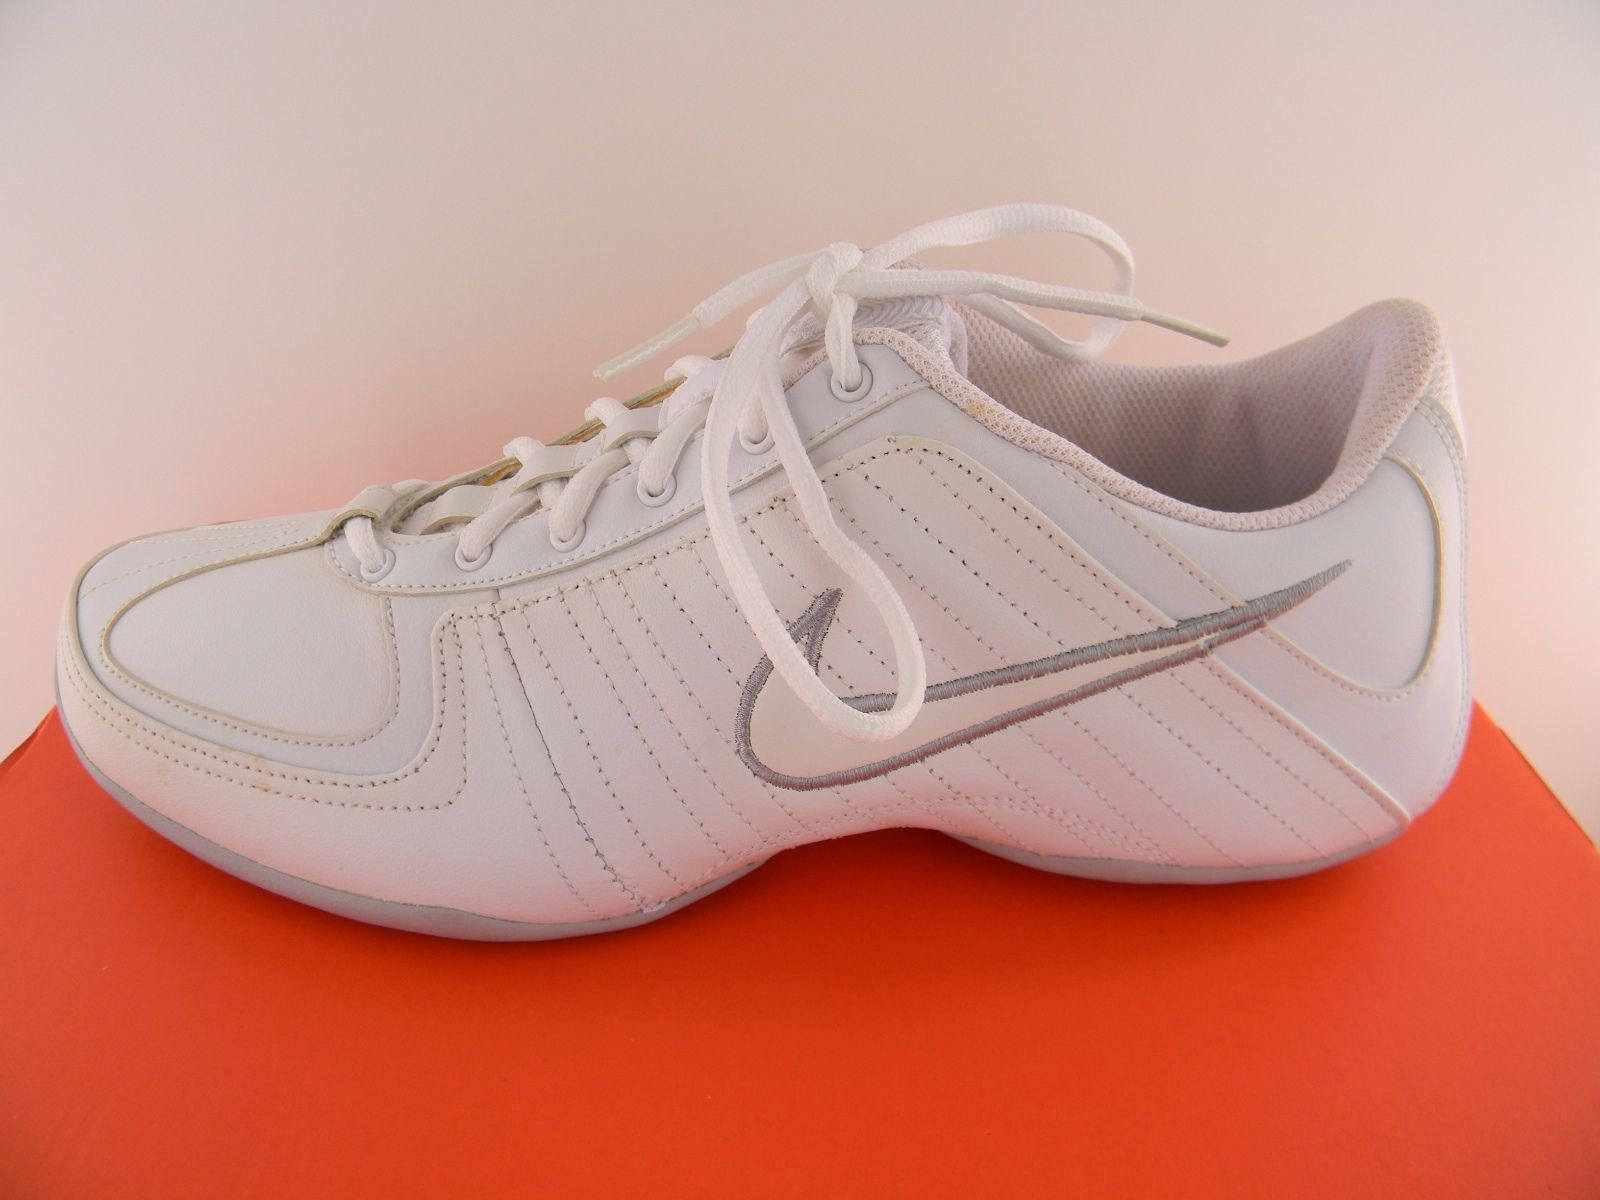 Nike Musique White Leather Womens Athletic Shoes 315757-111 - NWD* Medium Width